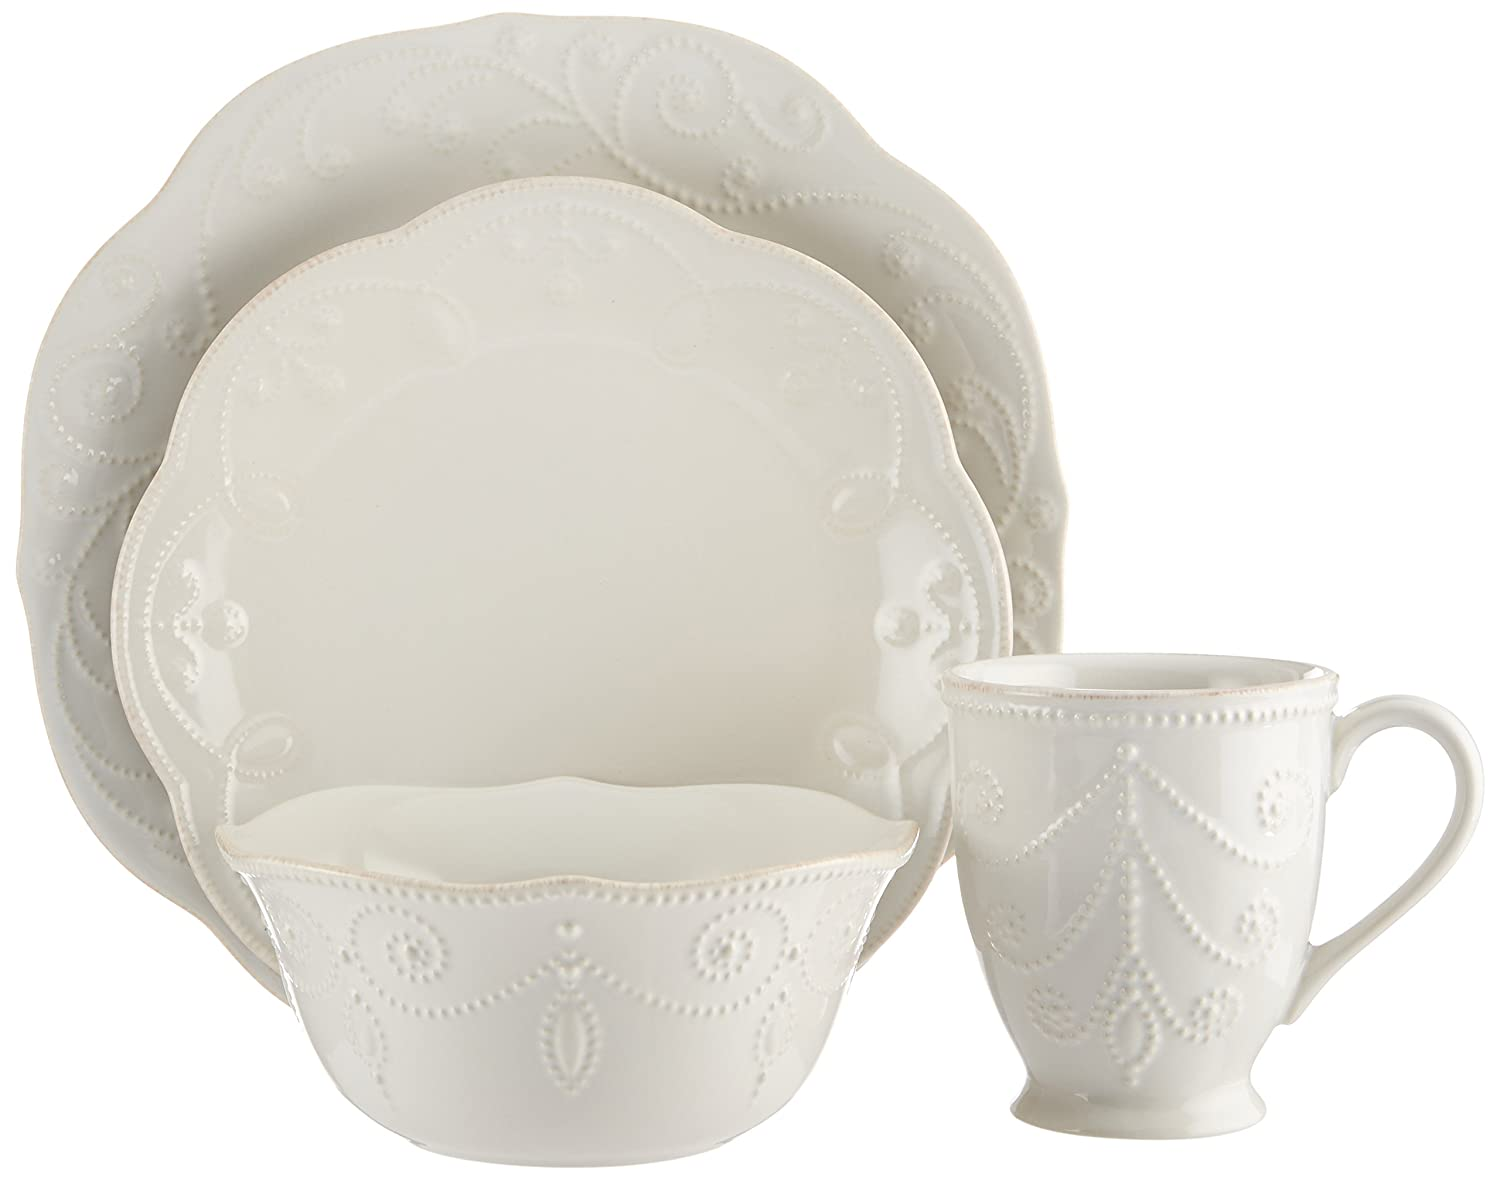 Amazon.com Lenox French Perle 4-Piece Place Setting White Dinner Set White Round Beaded Kitchen u0026 Dining  sc 1 st  Amazon.com & Amazon.com: Lenox French Perle 4-Piece Place Setting White: Dinner ...